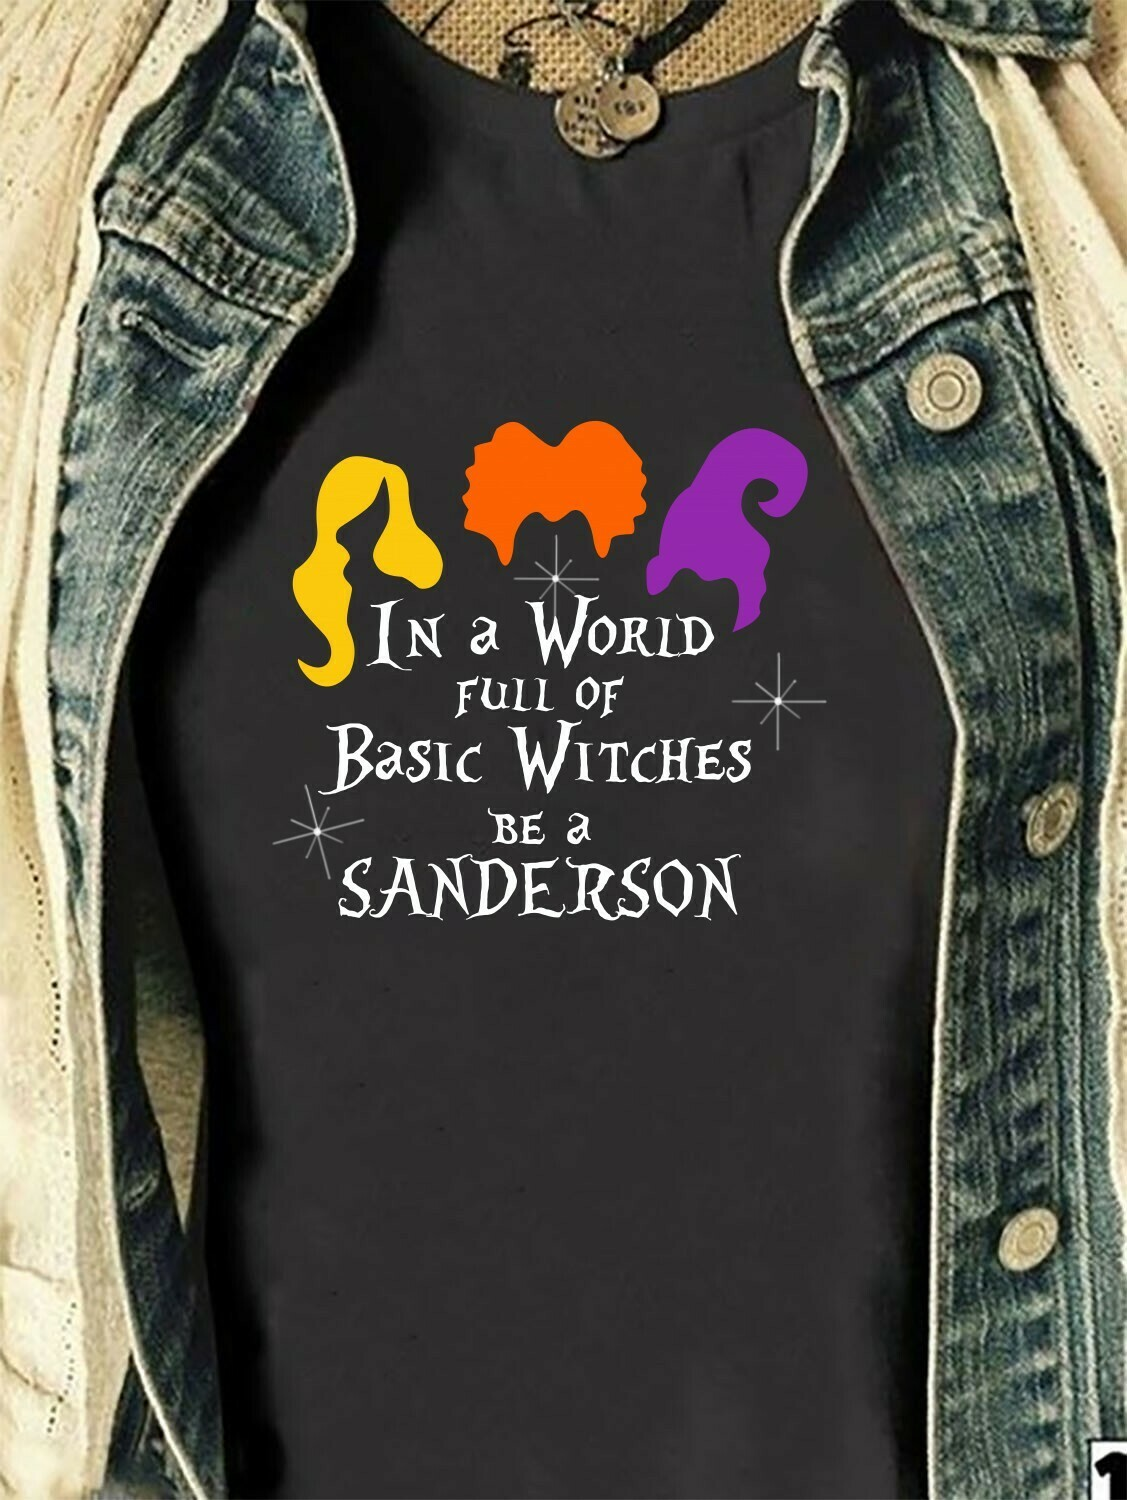 In A World Full Of Basic Withches Be A Sanderson Sisters Funny Hocus Pocus Mandala Disney Villains Halloween Mickey Not So Scary T Shirt Long Sleeve Sweatshirt Hoodie Jolly Family Gifts